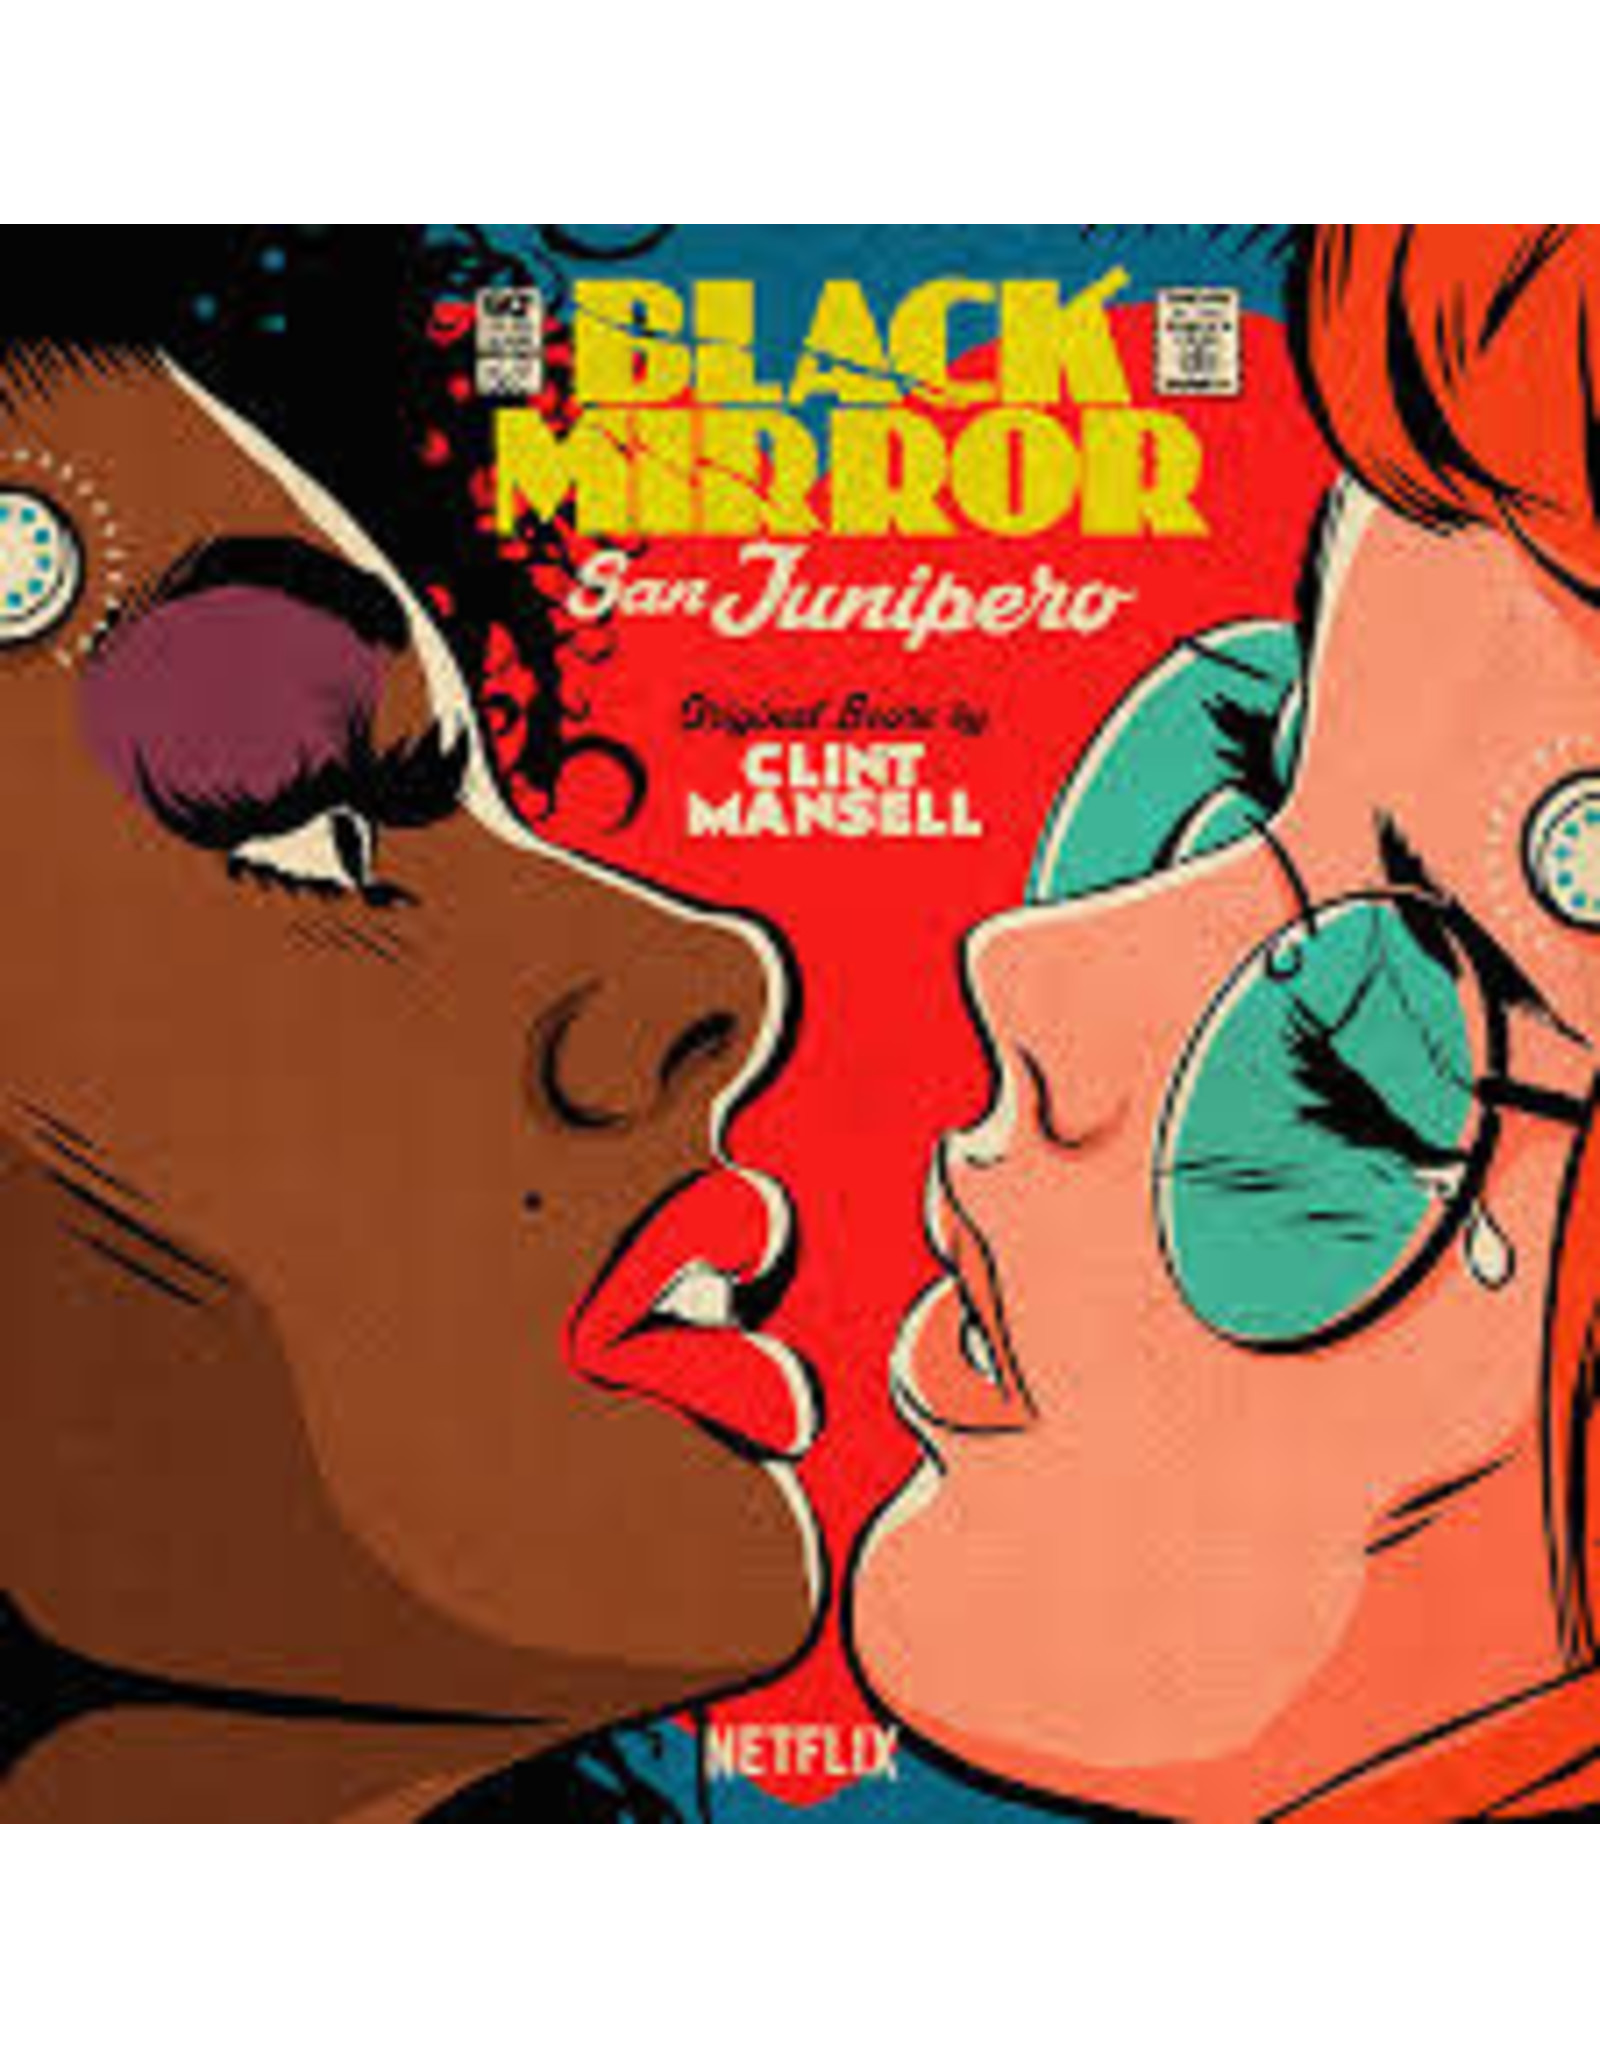 OST - Black Mirror San Junipero (Clint Mansell score) LP